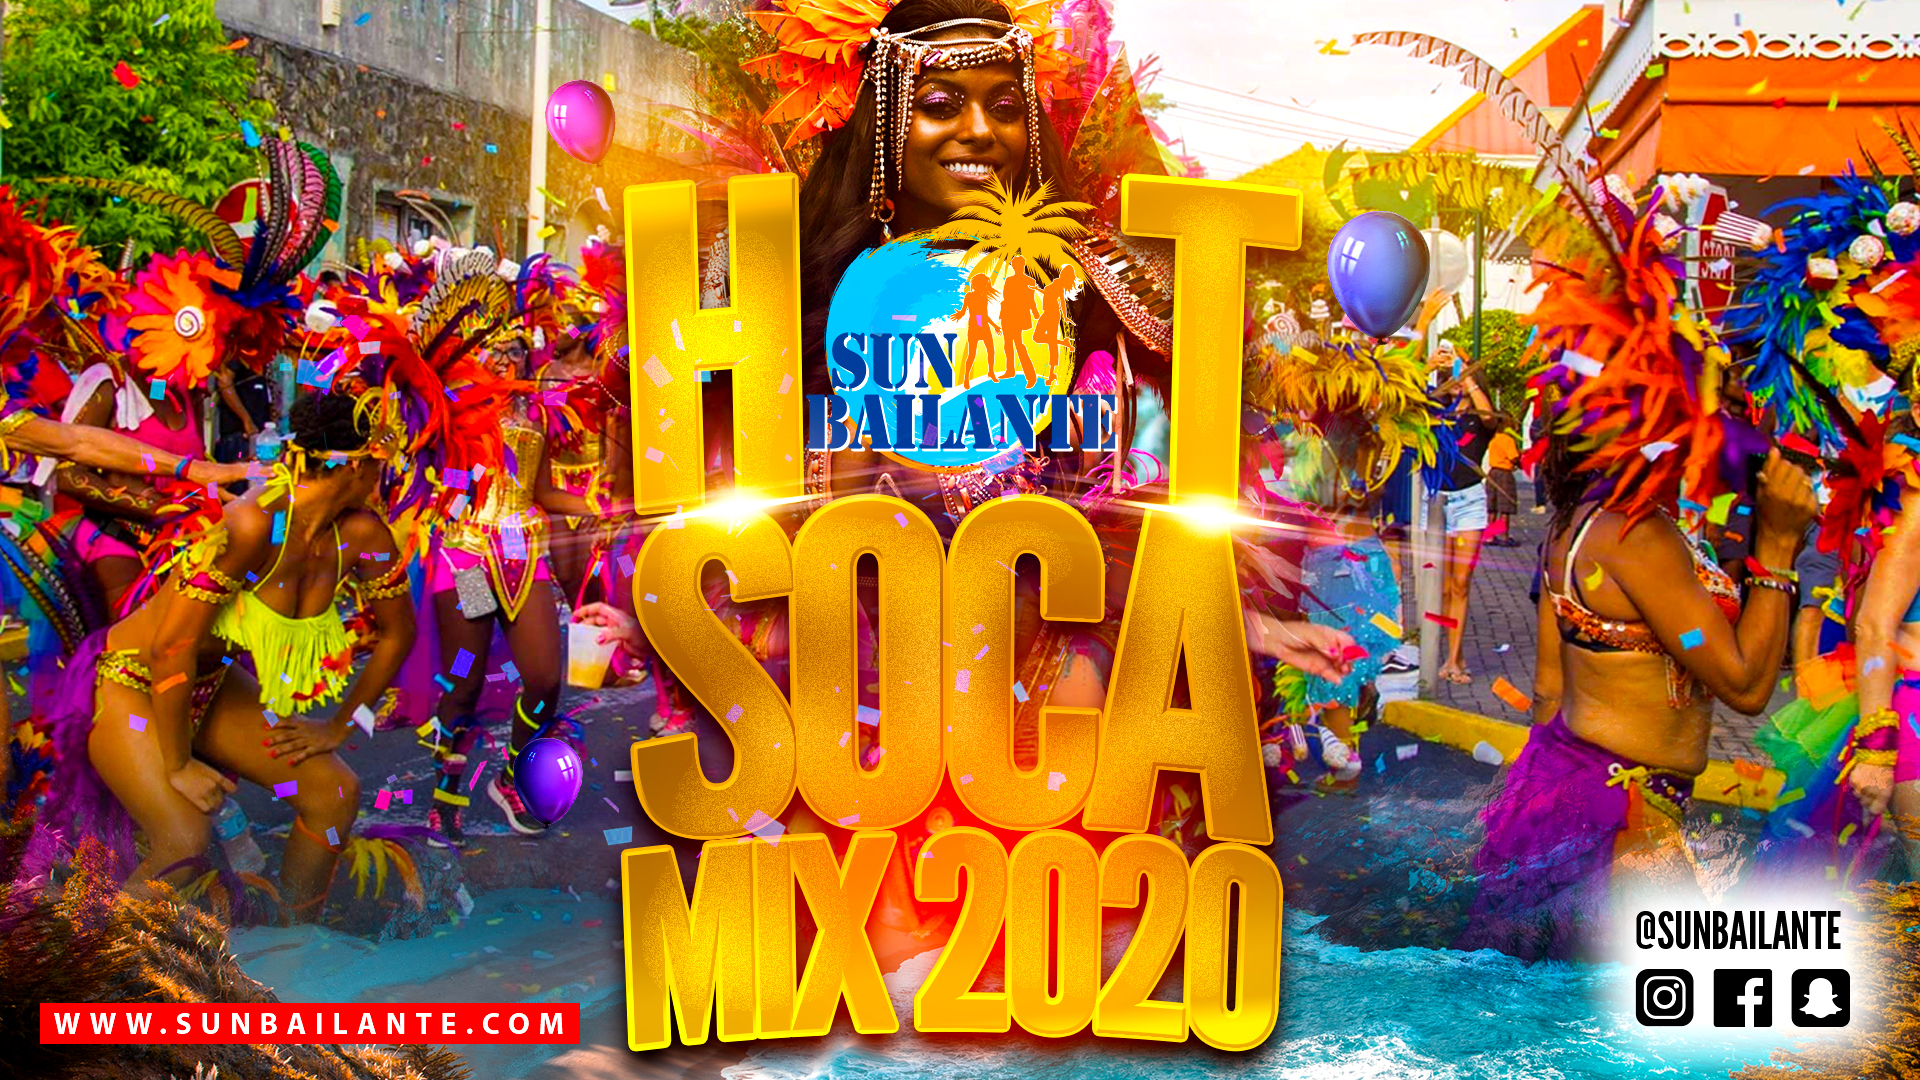 Hot Mix Soca 2020 - Trinidad & Tobago Carnaval Musique 2020